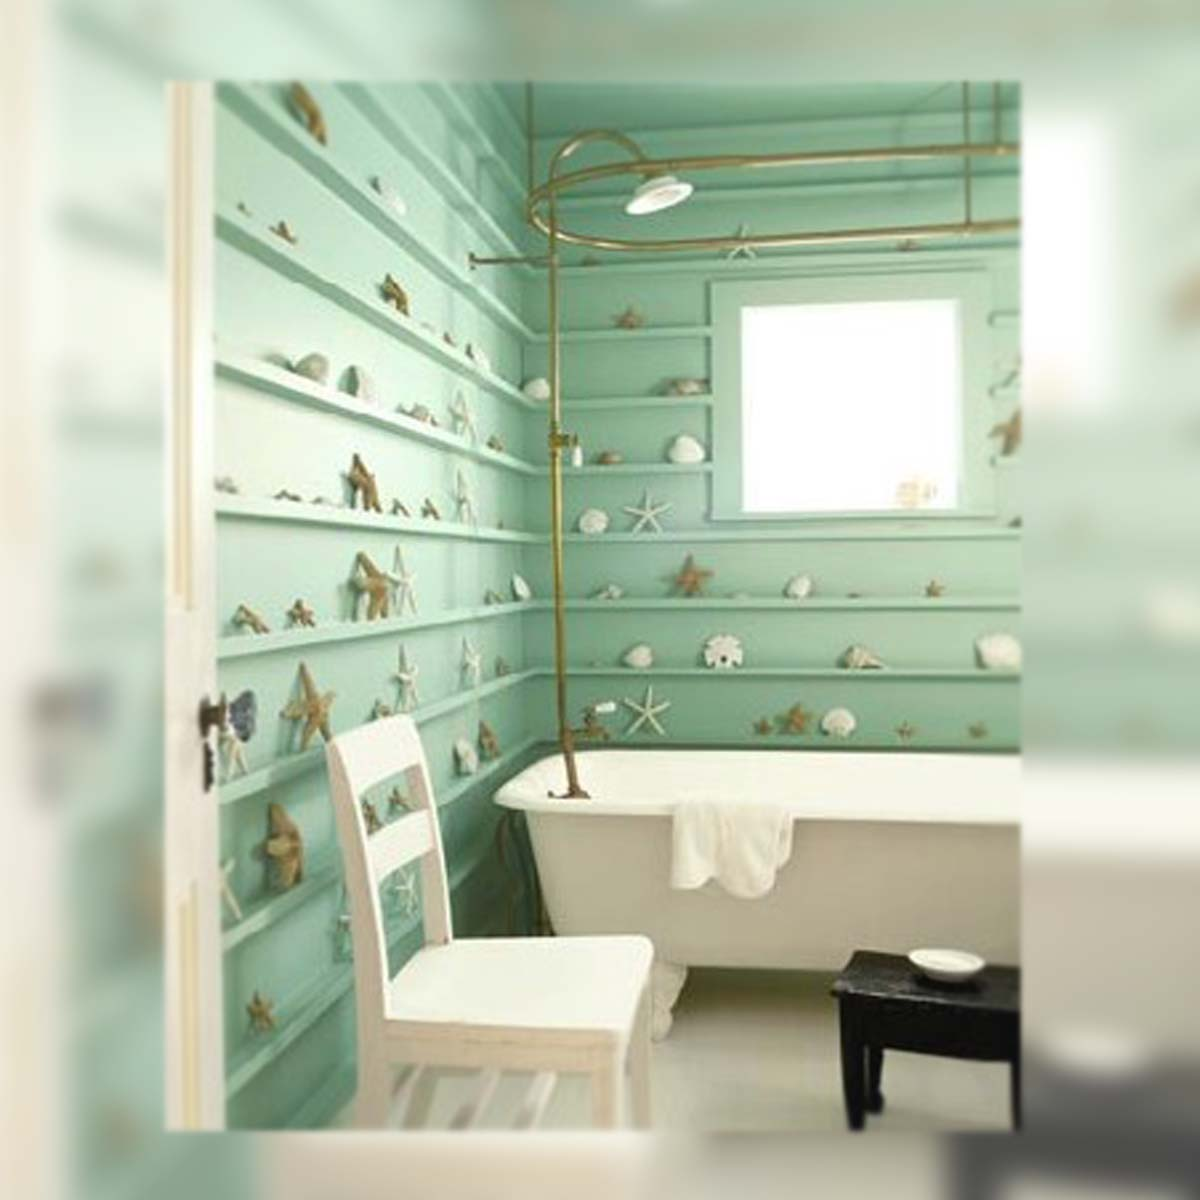 Baños Decoracion Verde:La Musa Decoración: -INSPIRATION DAY- Baño shabby mint